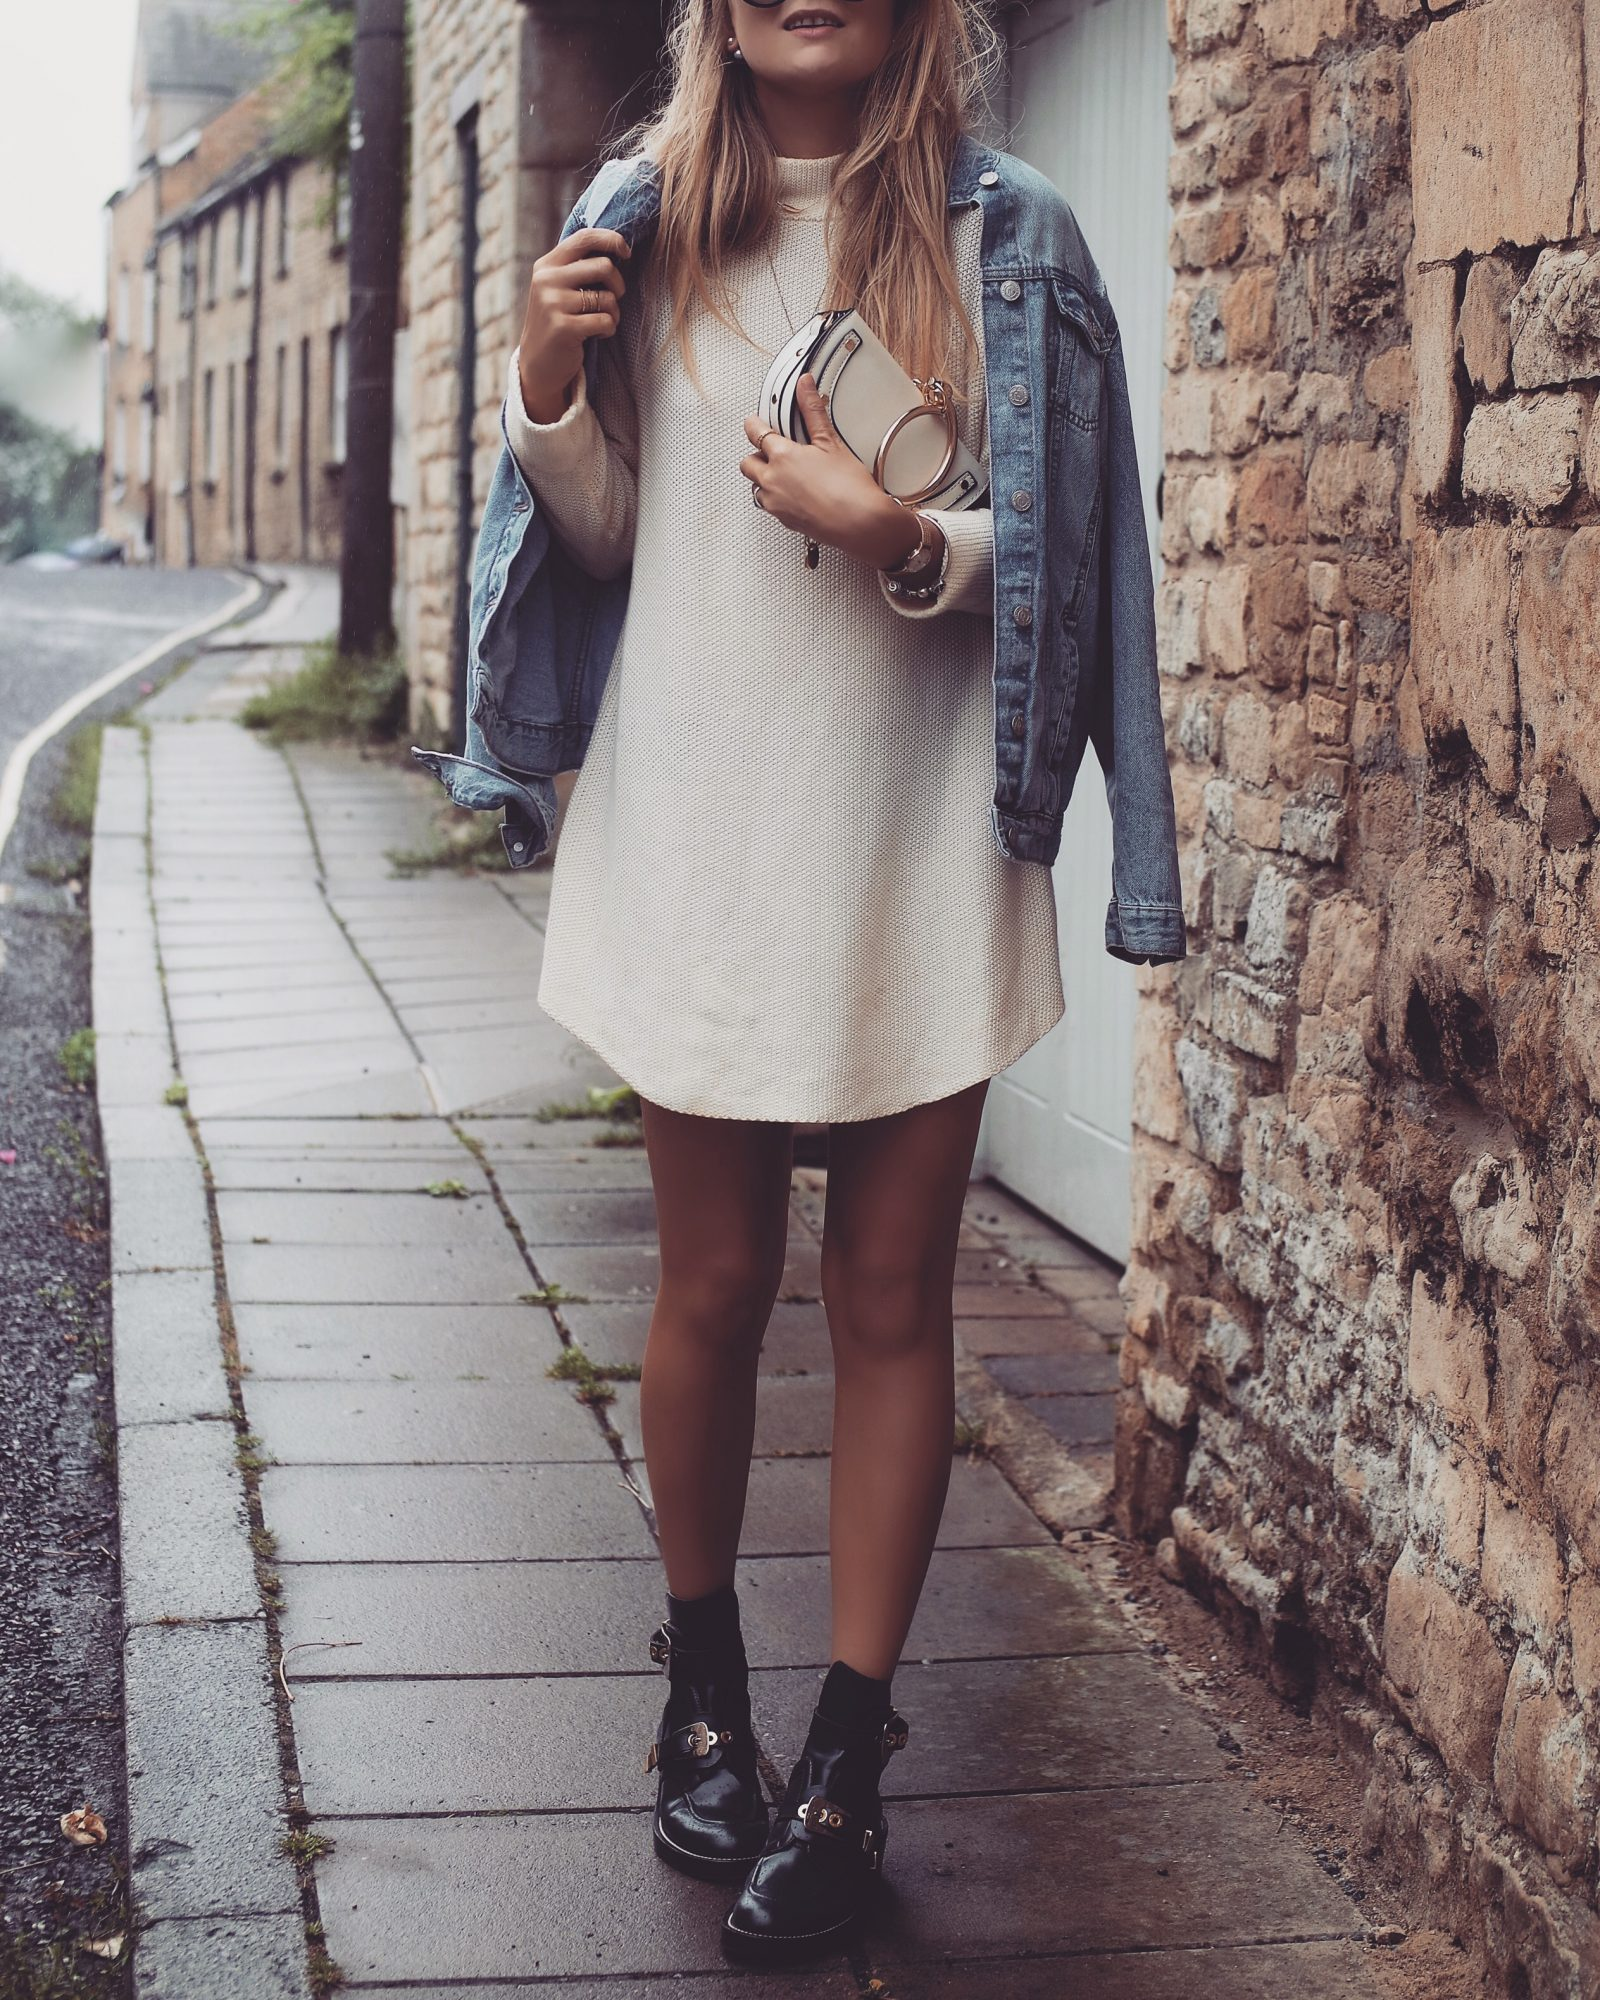 Henry London Rose Gold Watch - Fashion Blogger Layering